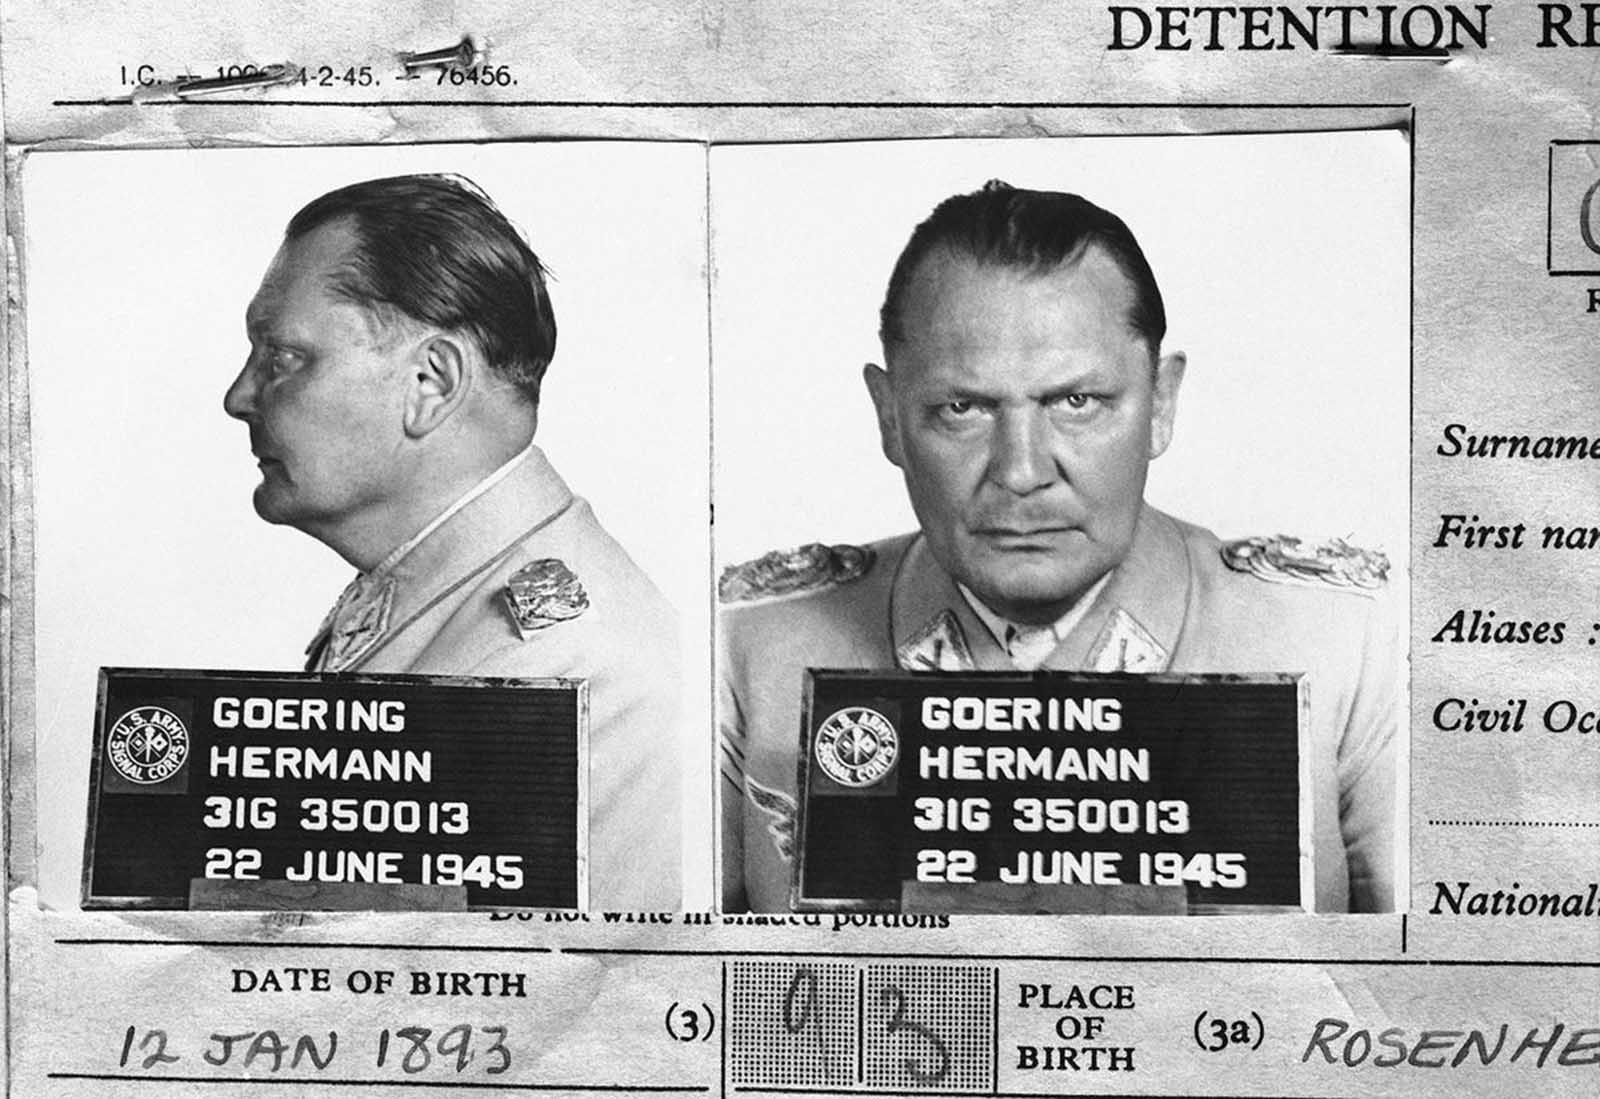 Hermann Goering, once the leader of the formidable Luftwaffe and second in command of the German Reich under Hitler, appears in a mugshot on file with the Central Registry of War Criminals and Security Suspects in Paris, France, on November 5, 1945. Goering surrendered to U.S. soldiers in Bavaria, on May 9, 1945, and was eventually taken to Nuremburg to face trial for War Crimes.